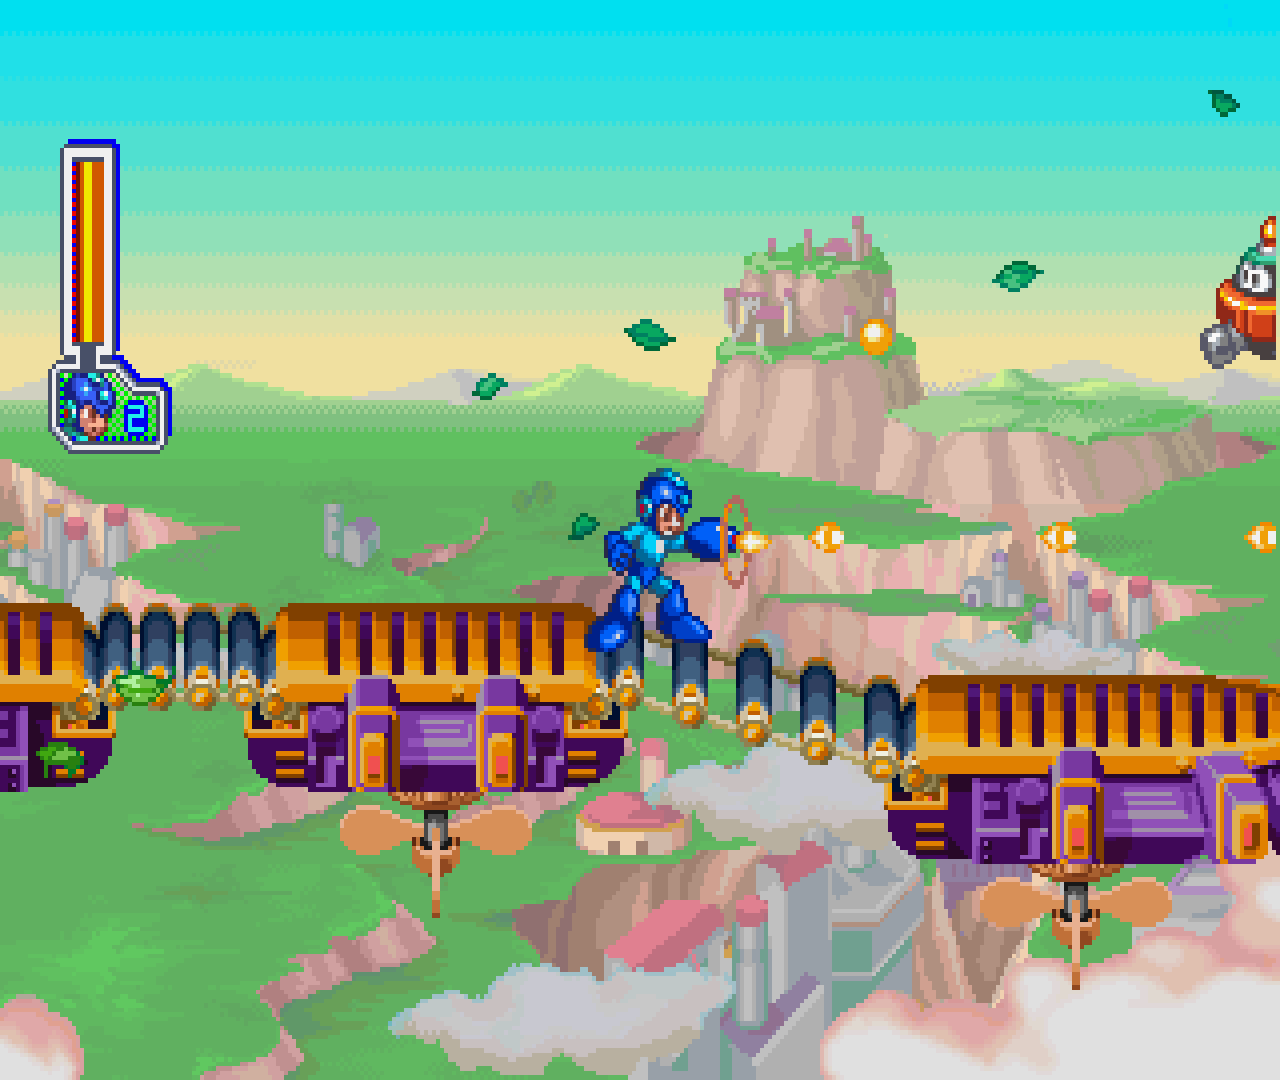 Figure 9 - There are different levels in Mega Man 8, such as up in the sky